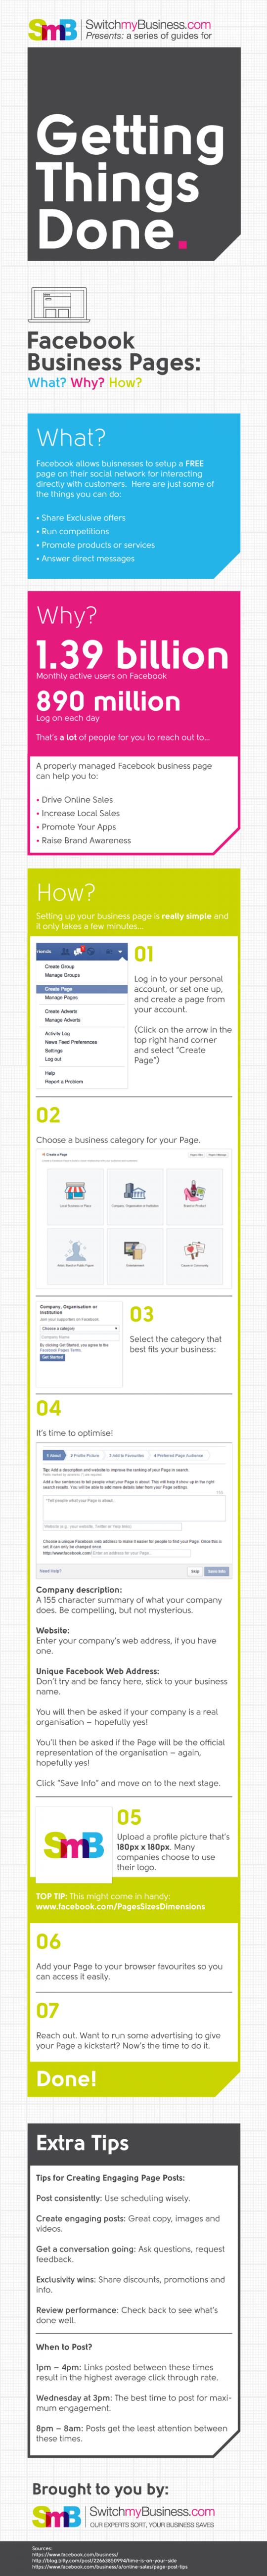 Setting up a Facebook business page: what, why, how and when?